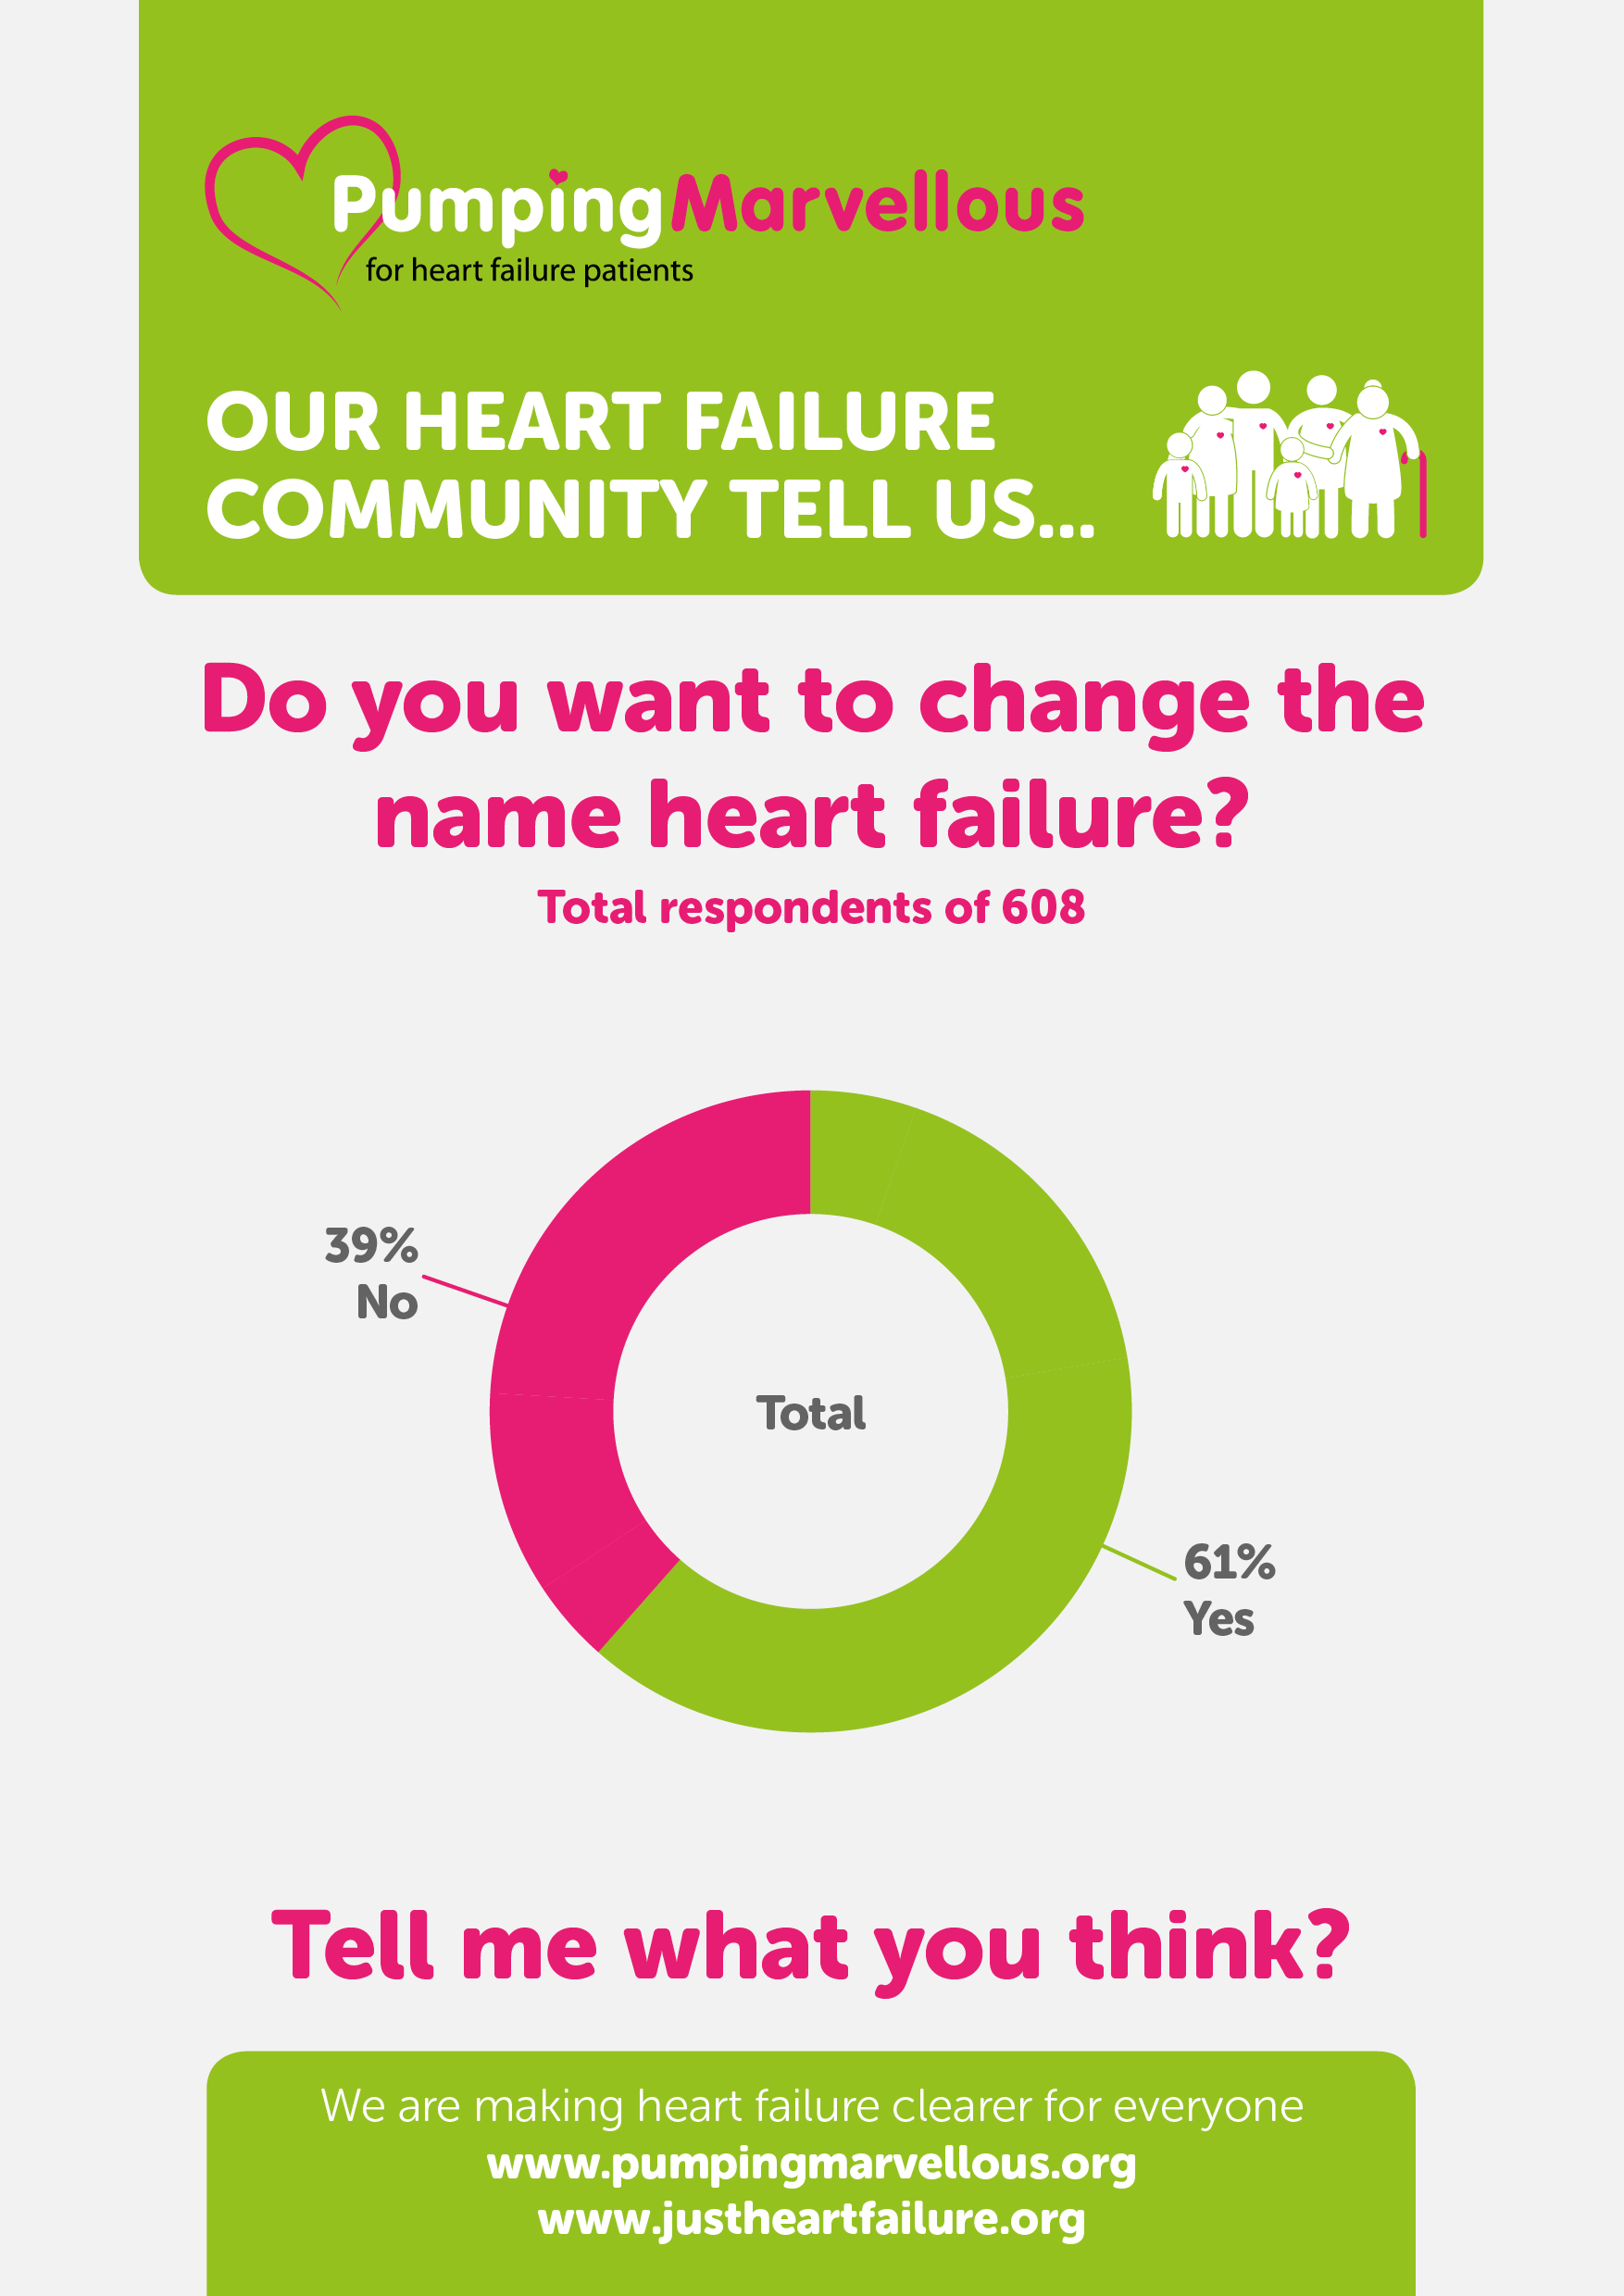 Heart Failure Poll Results - What's in a name?